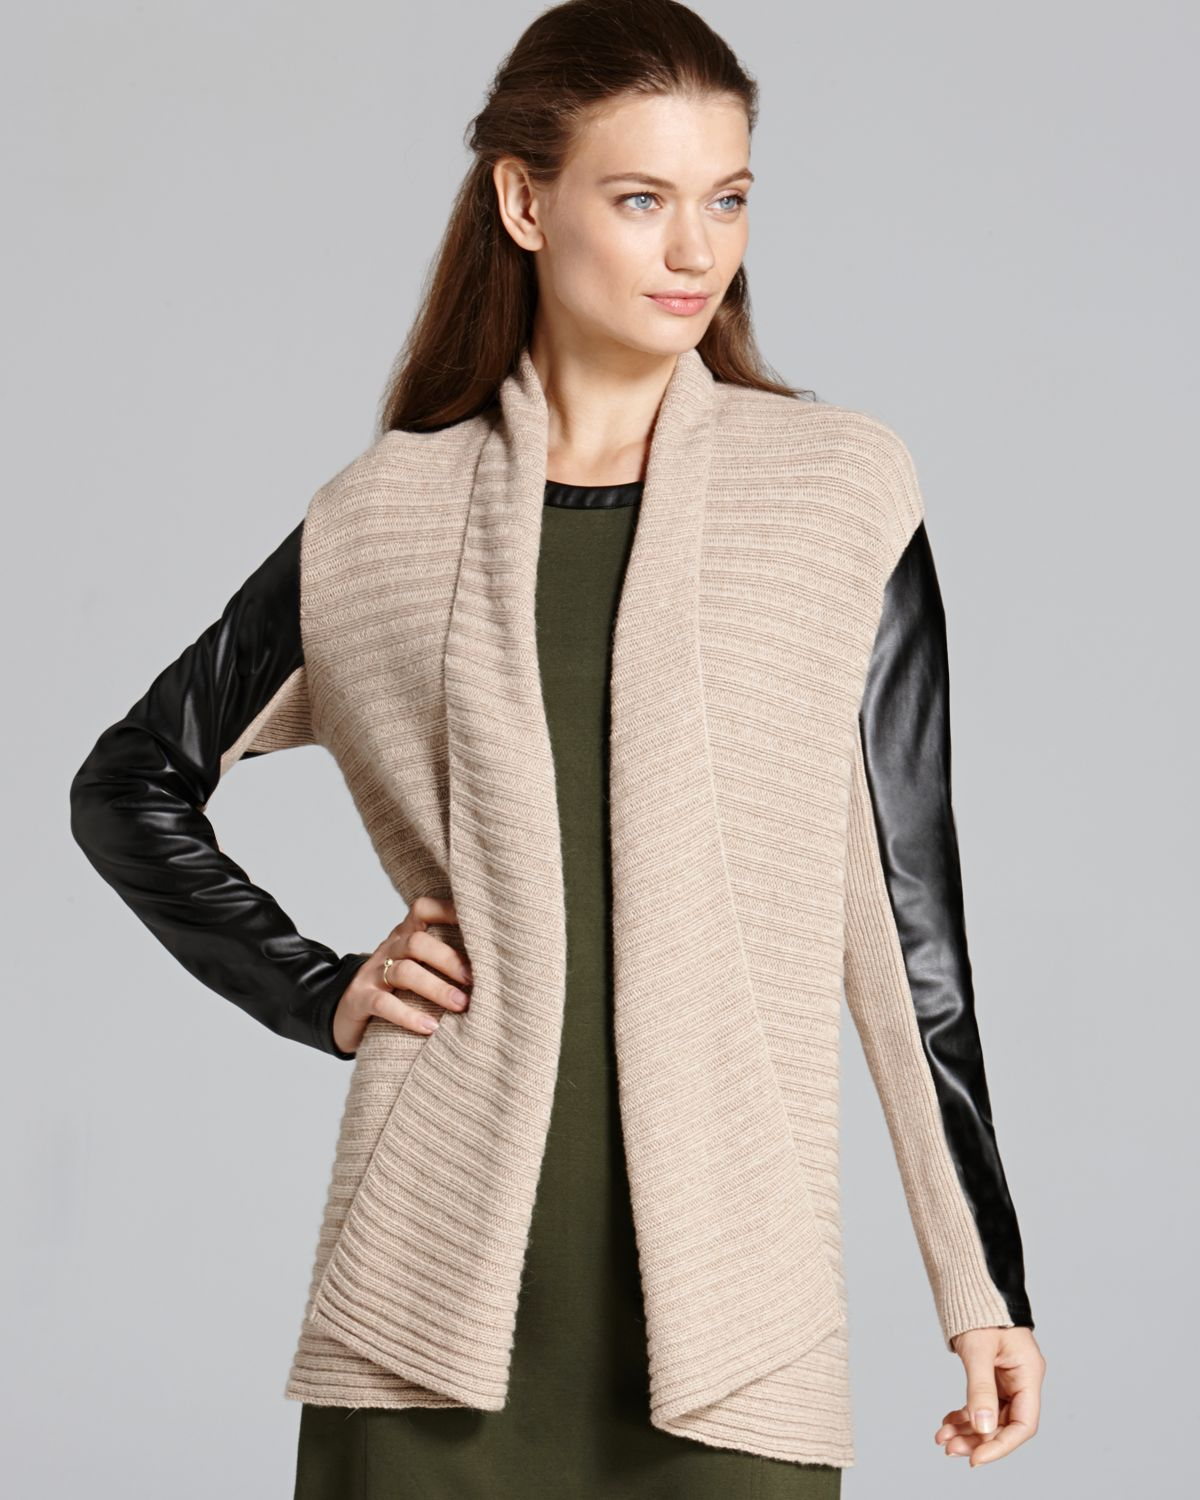 Lyst Dkny Cozy Cardigan With Faux Leather Sleeves In Natural